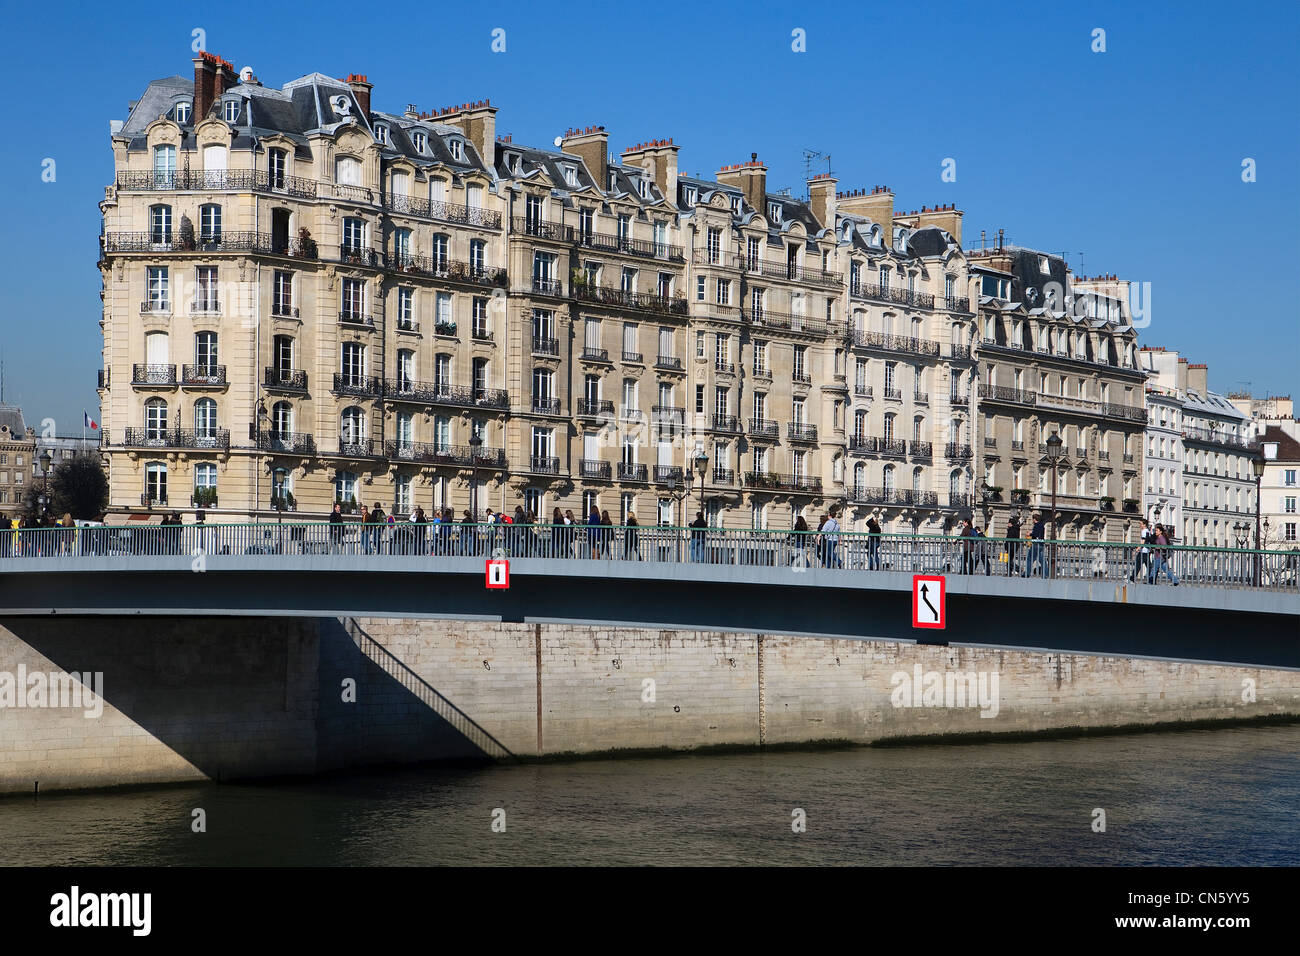 France, Paris, the Seine river banks listed as World Heritage by UNESCO and St Louis bridge - Stock Image